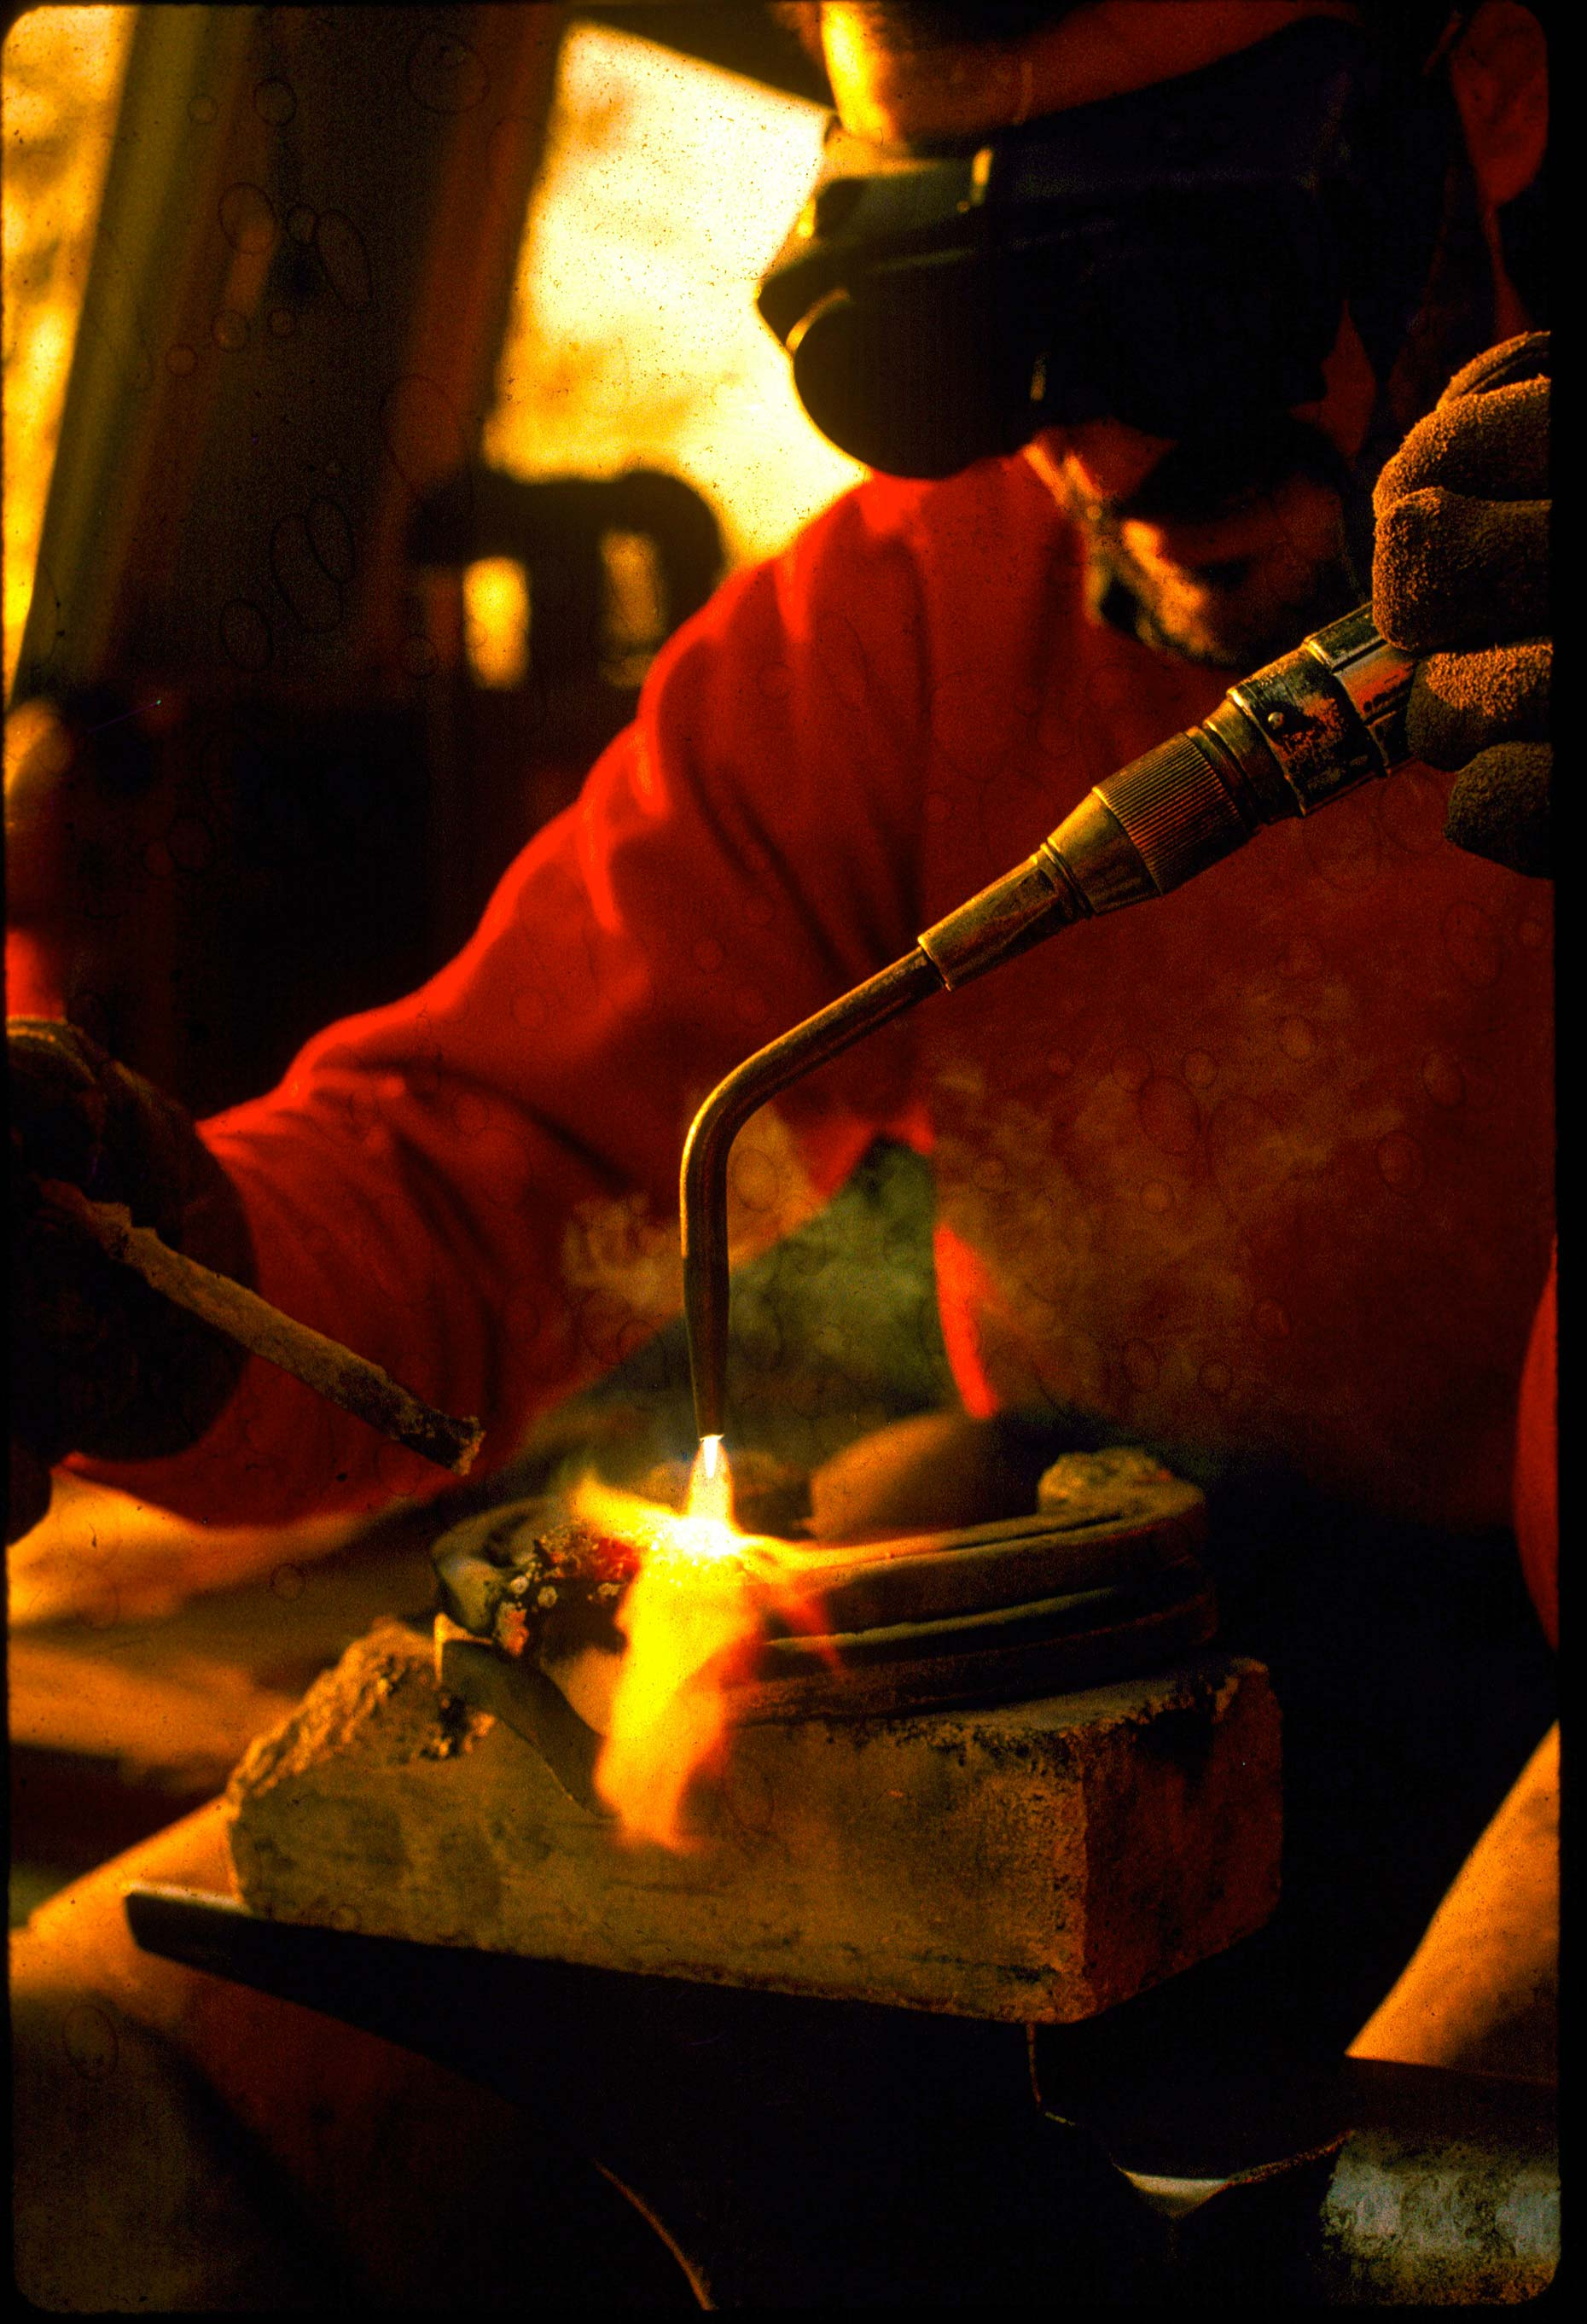 blacksmith_welding_Hot_Shoe _on Horseshoe_Anvil.jpg